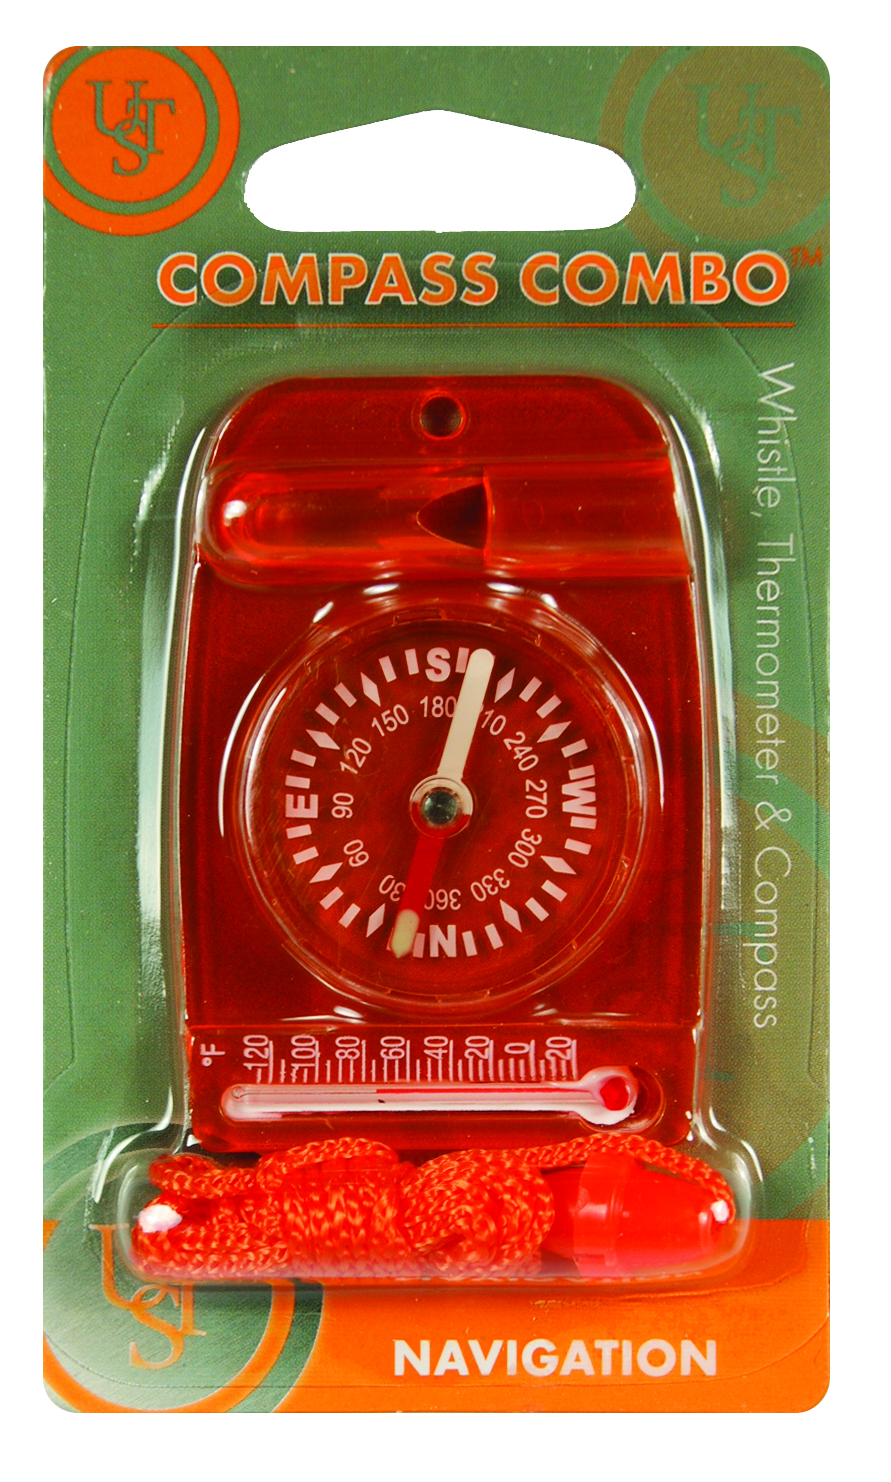 20-310-35-2A - UST Brands Compass Combo, Orange Blister